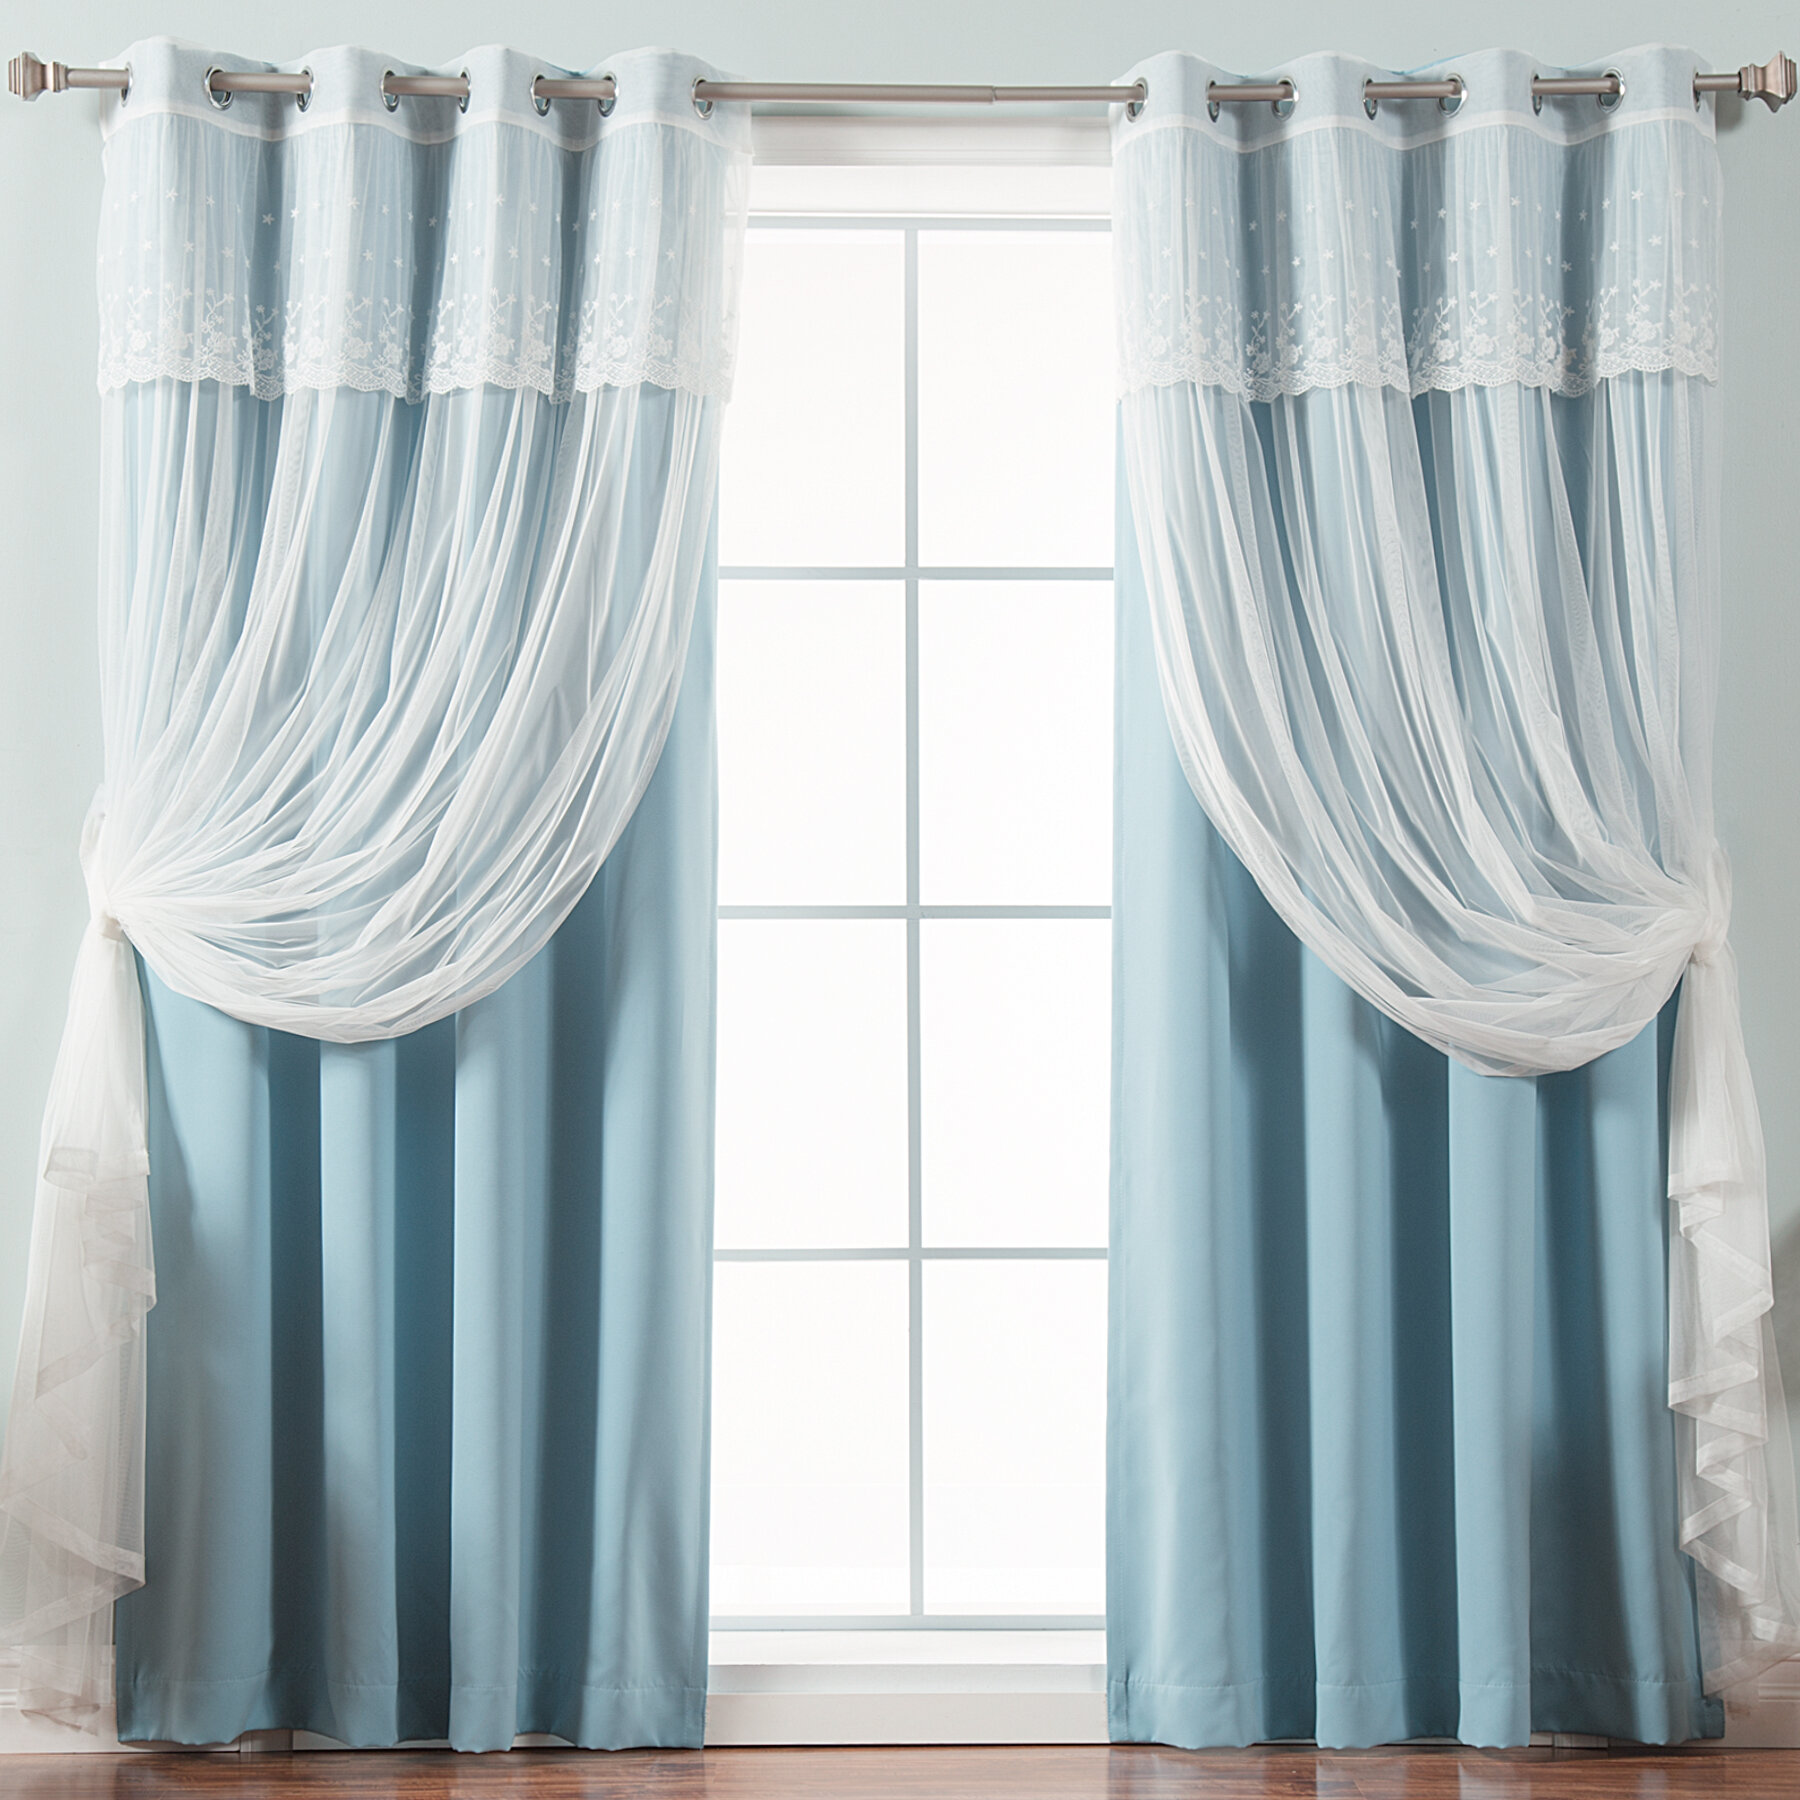 window inches blackout striking eclipse stores thermal grommet curtains size concept achim hexagon geo drapes drape curtain insulated of harmony alexis liner panel blackoutt panels top full images target